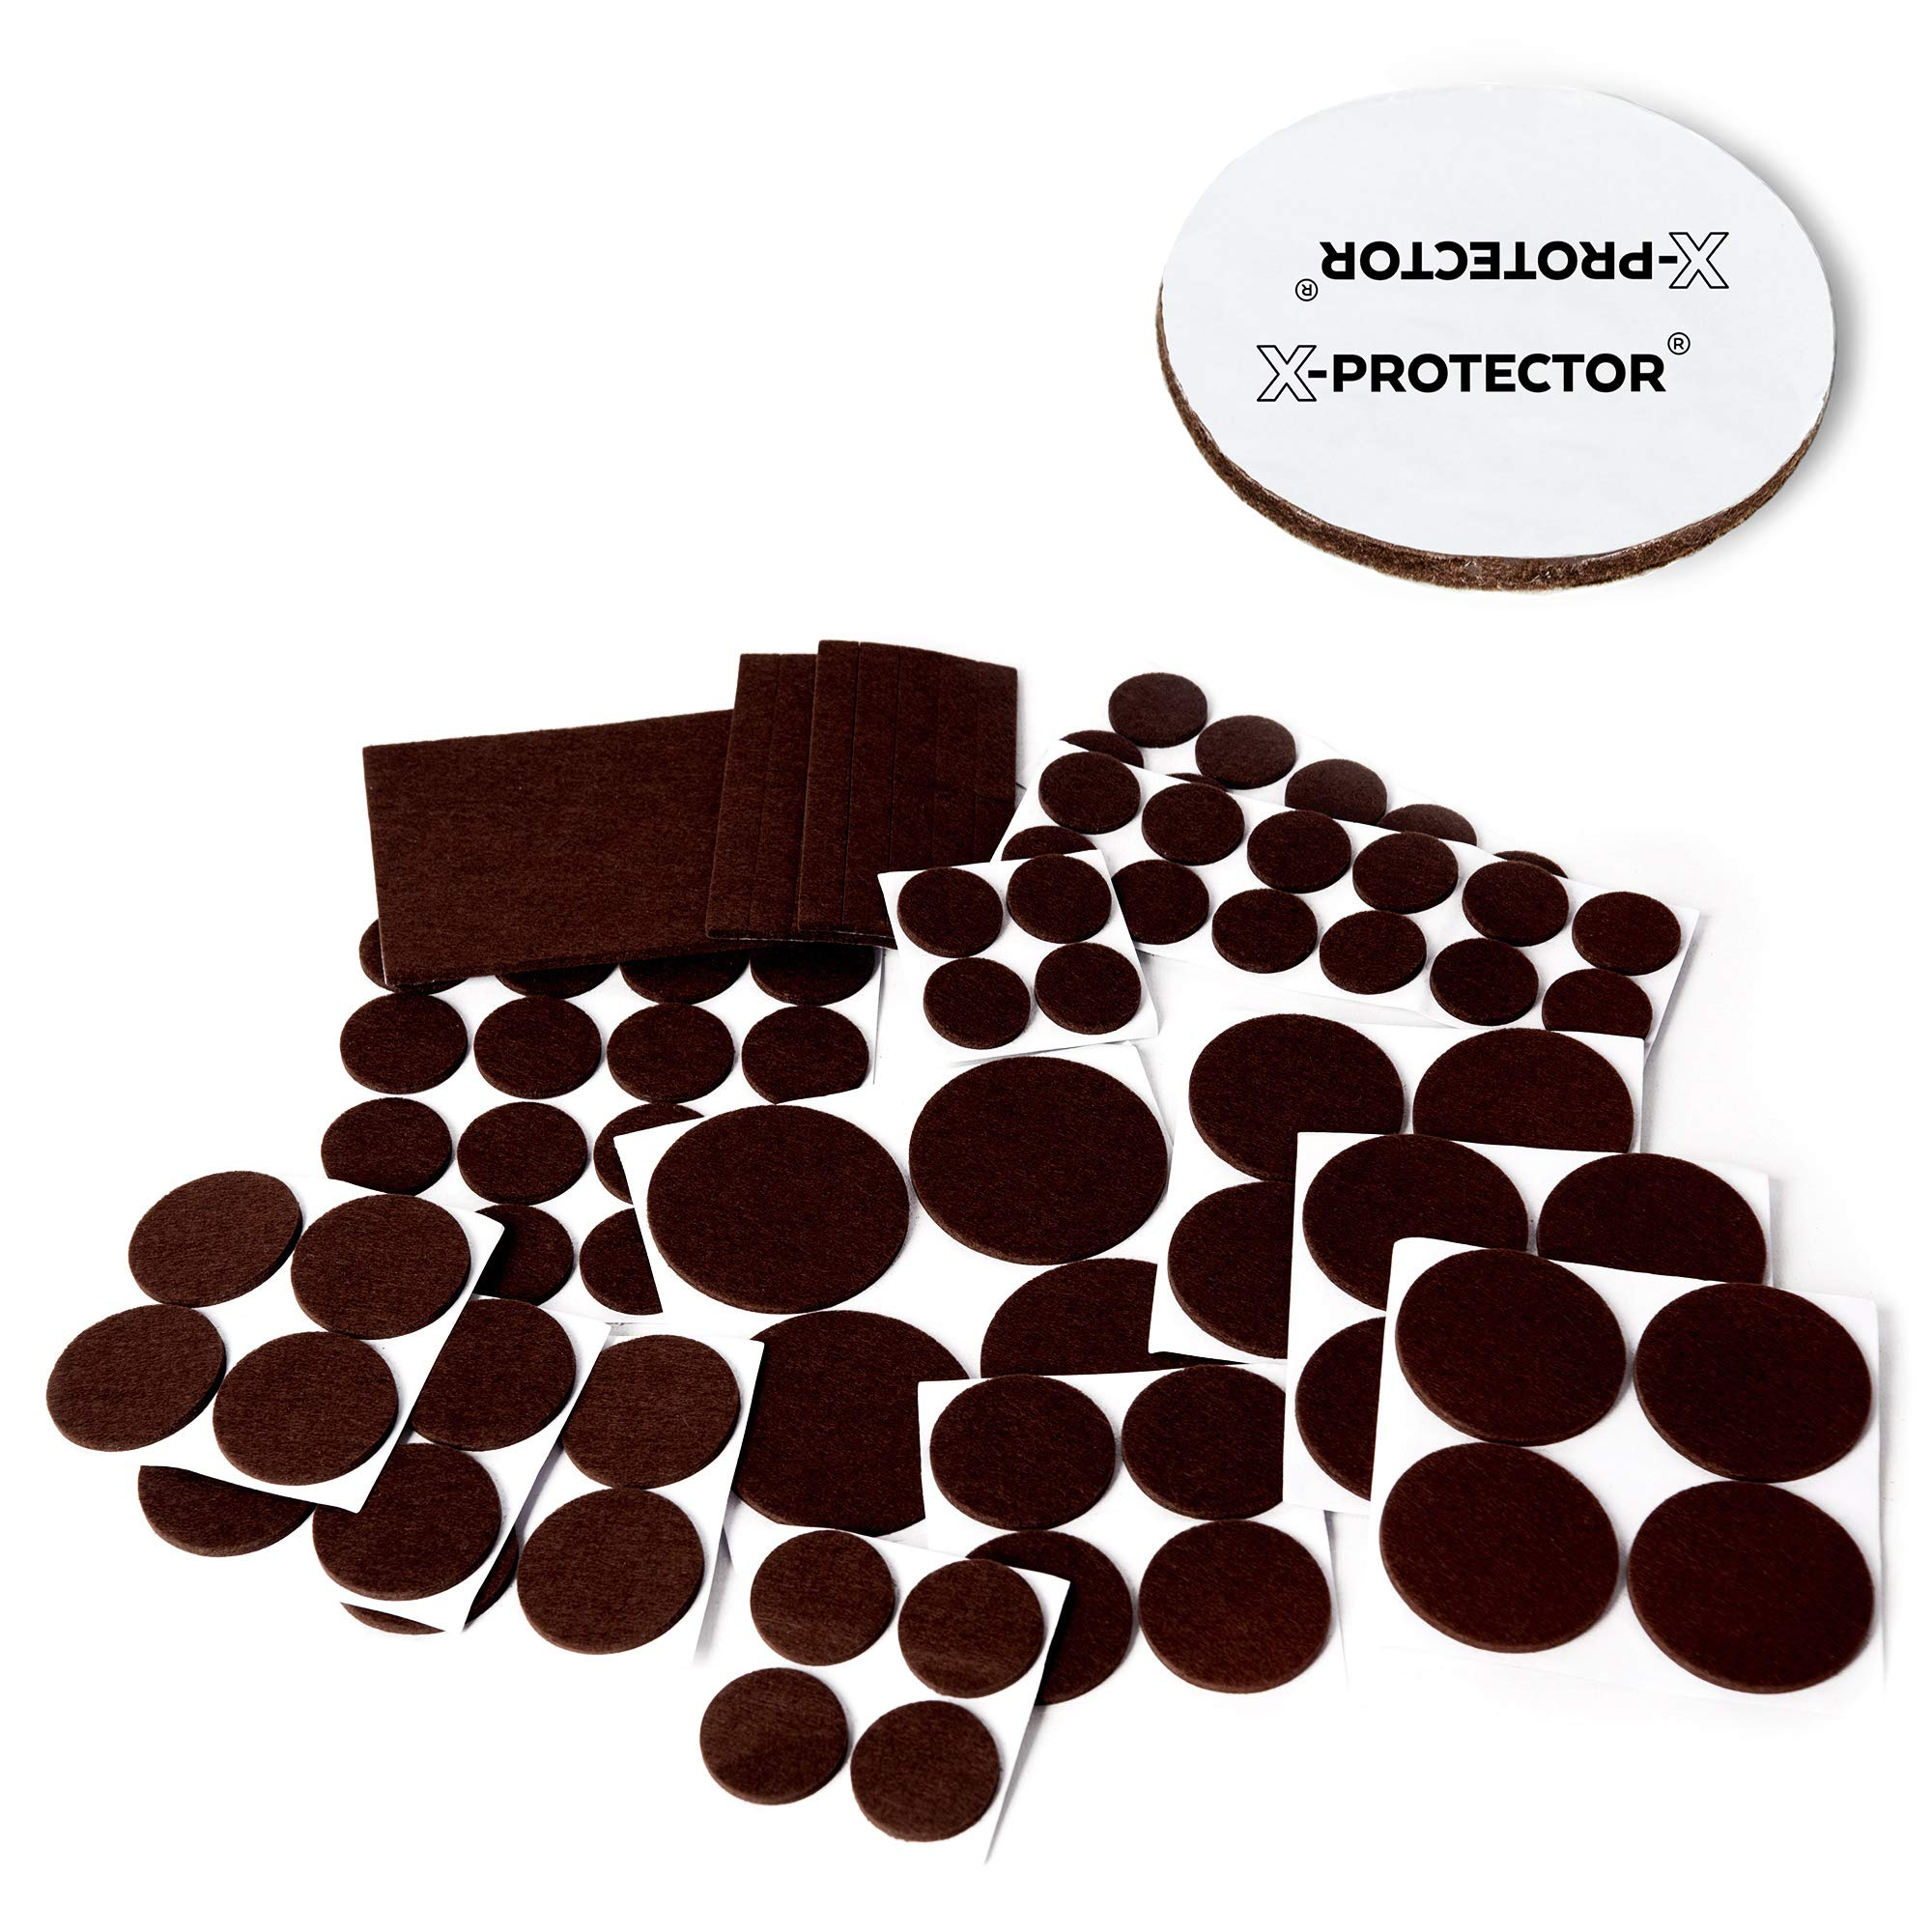 X-PROTECTOR Premium XXL SIZES Furniture Pads! BIG SIZES of Heavy Duty Felt Pads Furniture Feet – Your Best Wood Floor Protectors. Protect Your Hardwood & Laminate Flooring From Heavy Furniture!